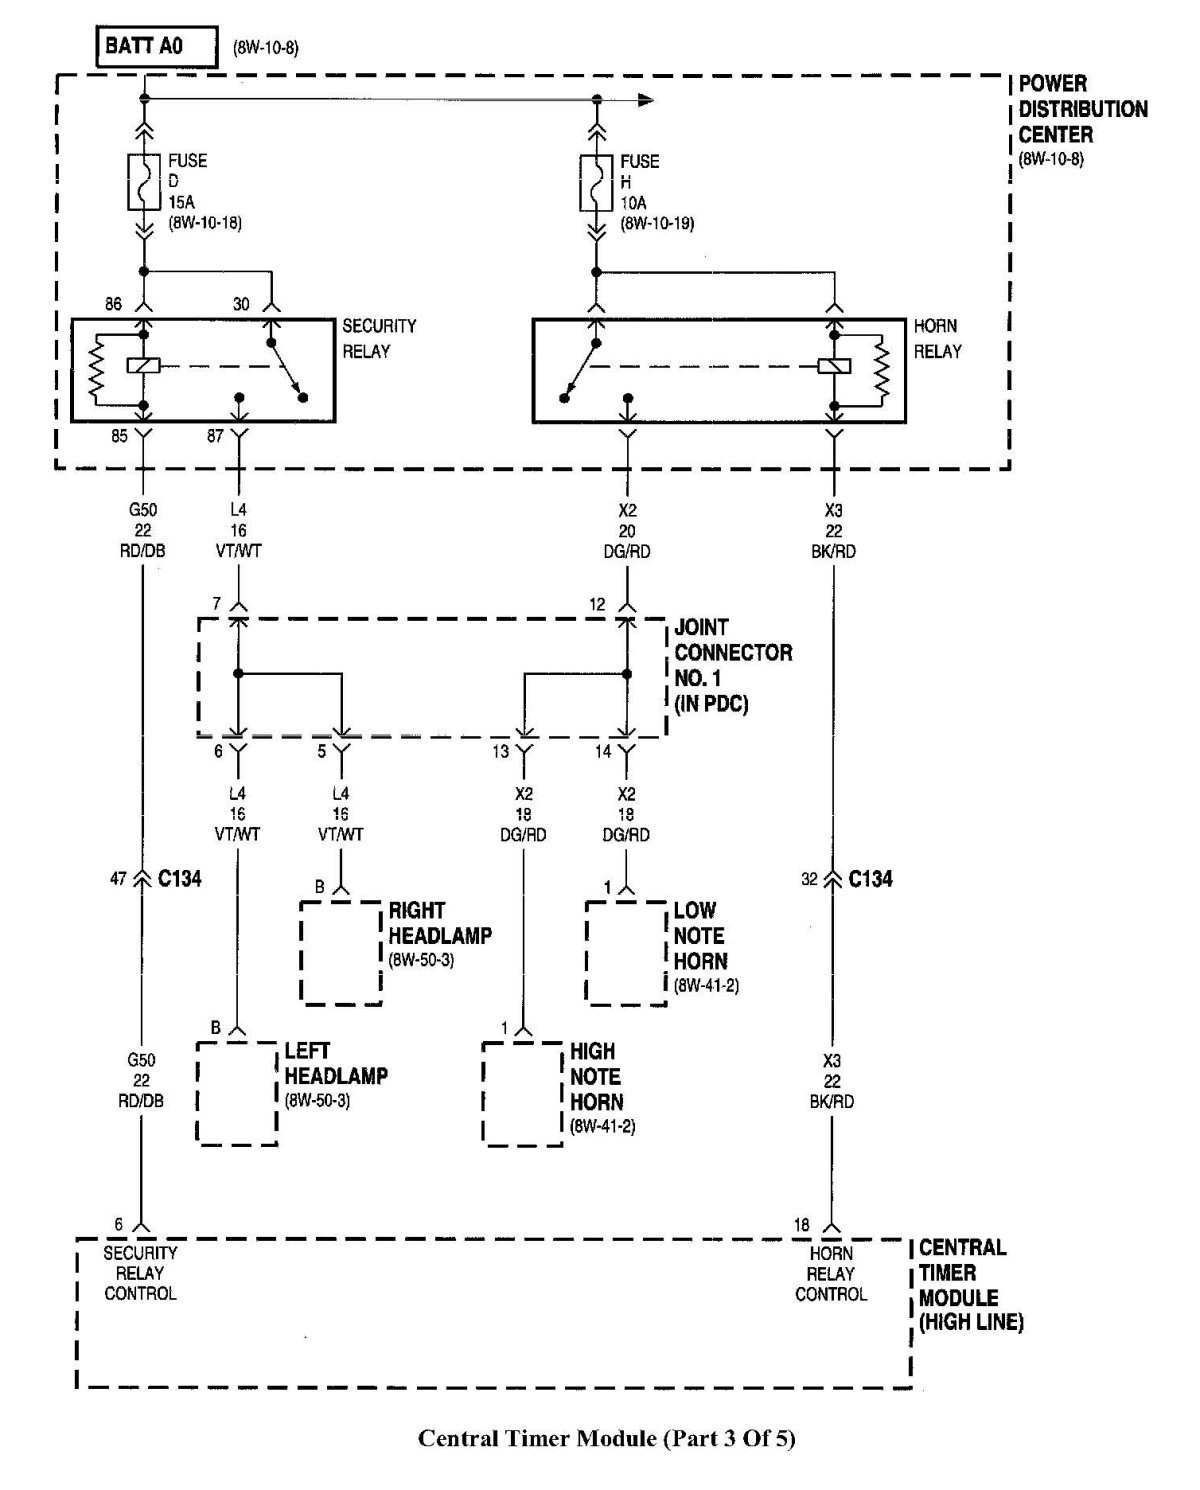 Wiring Diagram For 1998 Dodge Ram 3500 - Wiring Diagrams Hubs - 1998 Dodge Ram 1500 Trailer Wiring Diagram